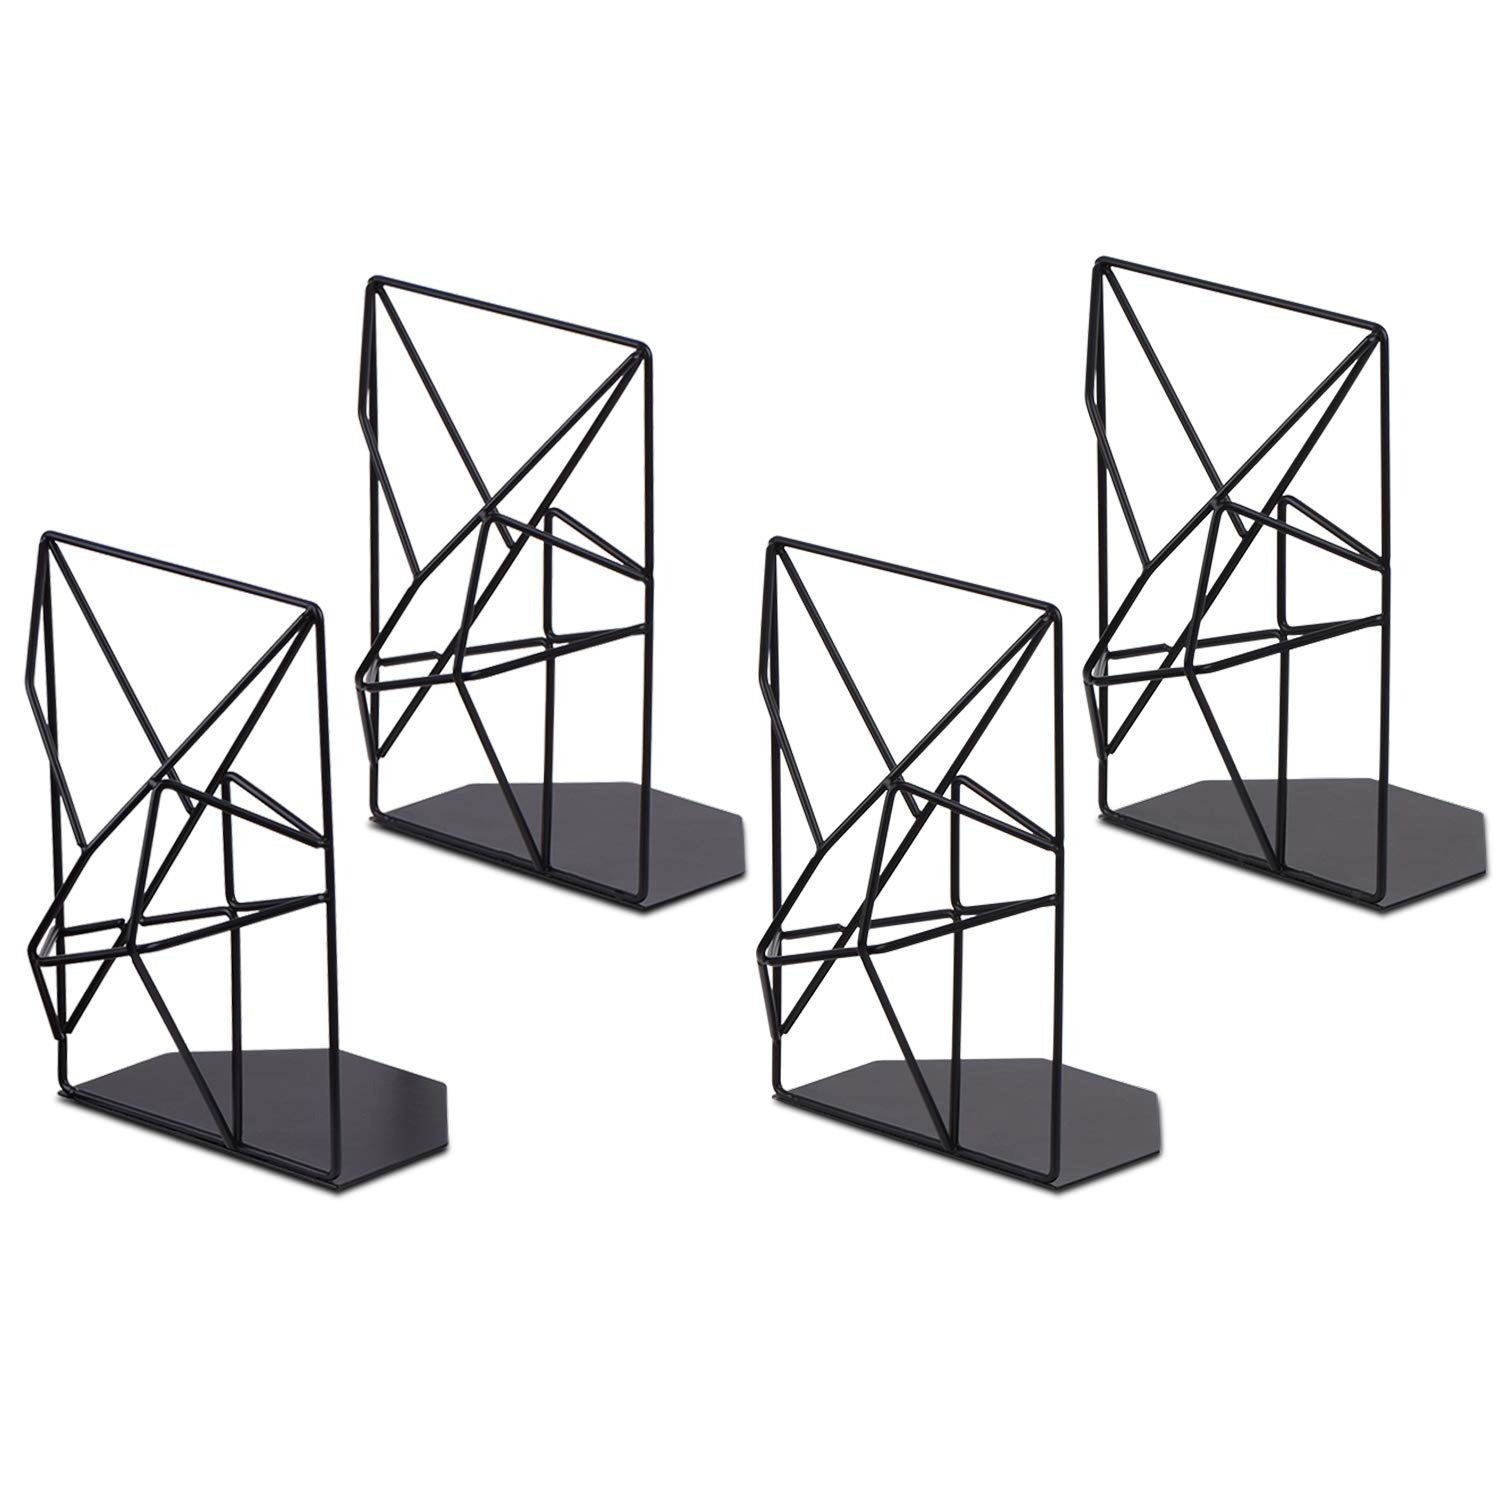 SRIWATANA Book ends Black, Decorative Metal Bookends for Shelves(2 Pairs/4 Pieces)